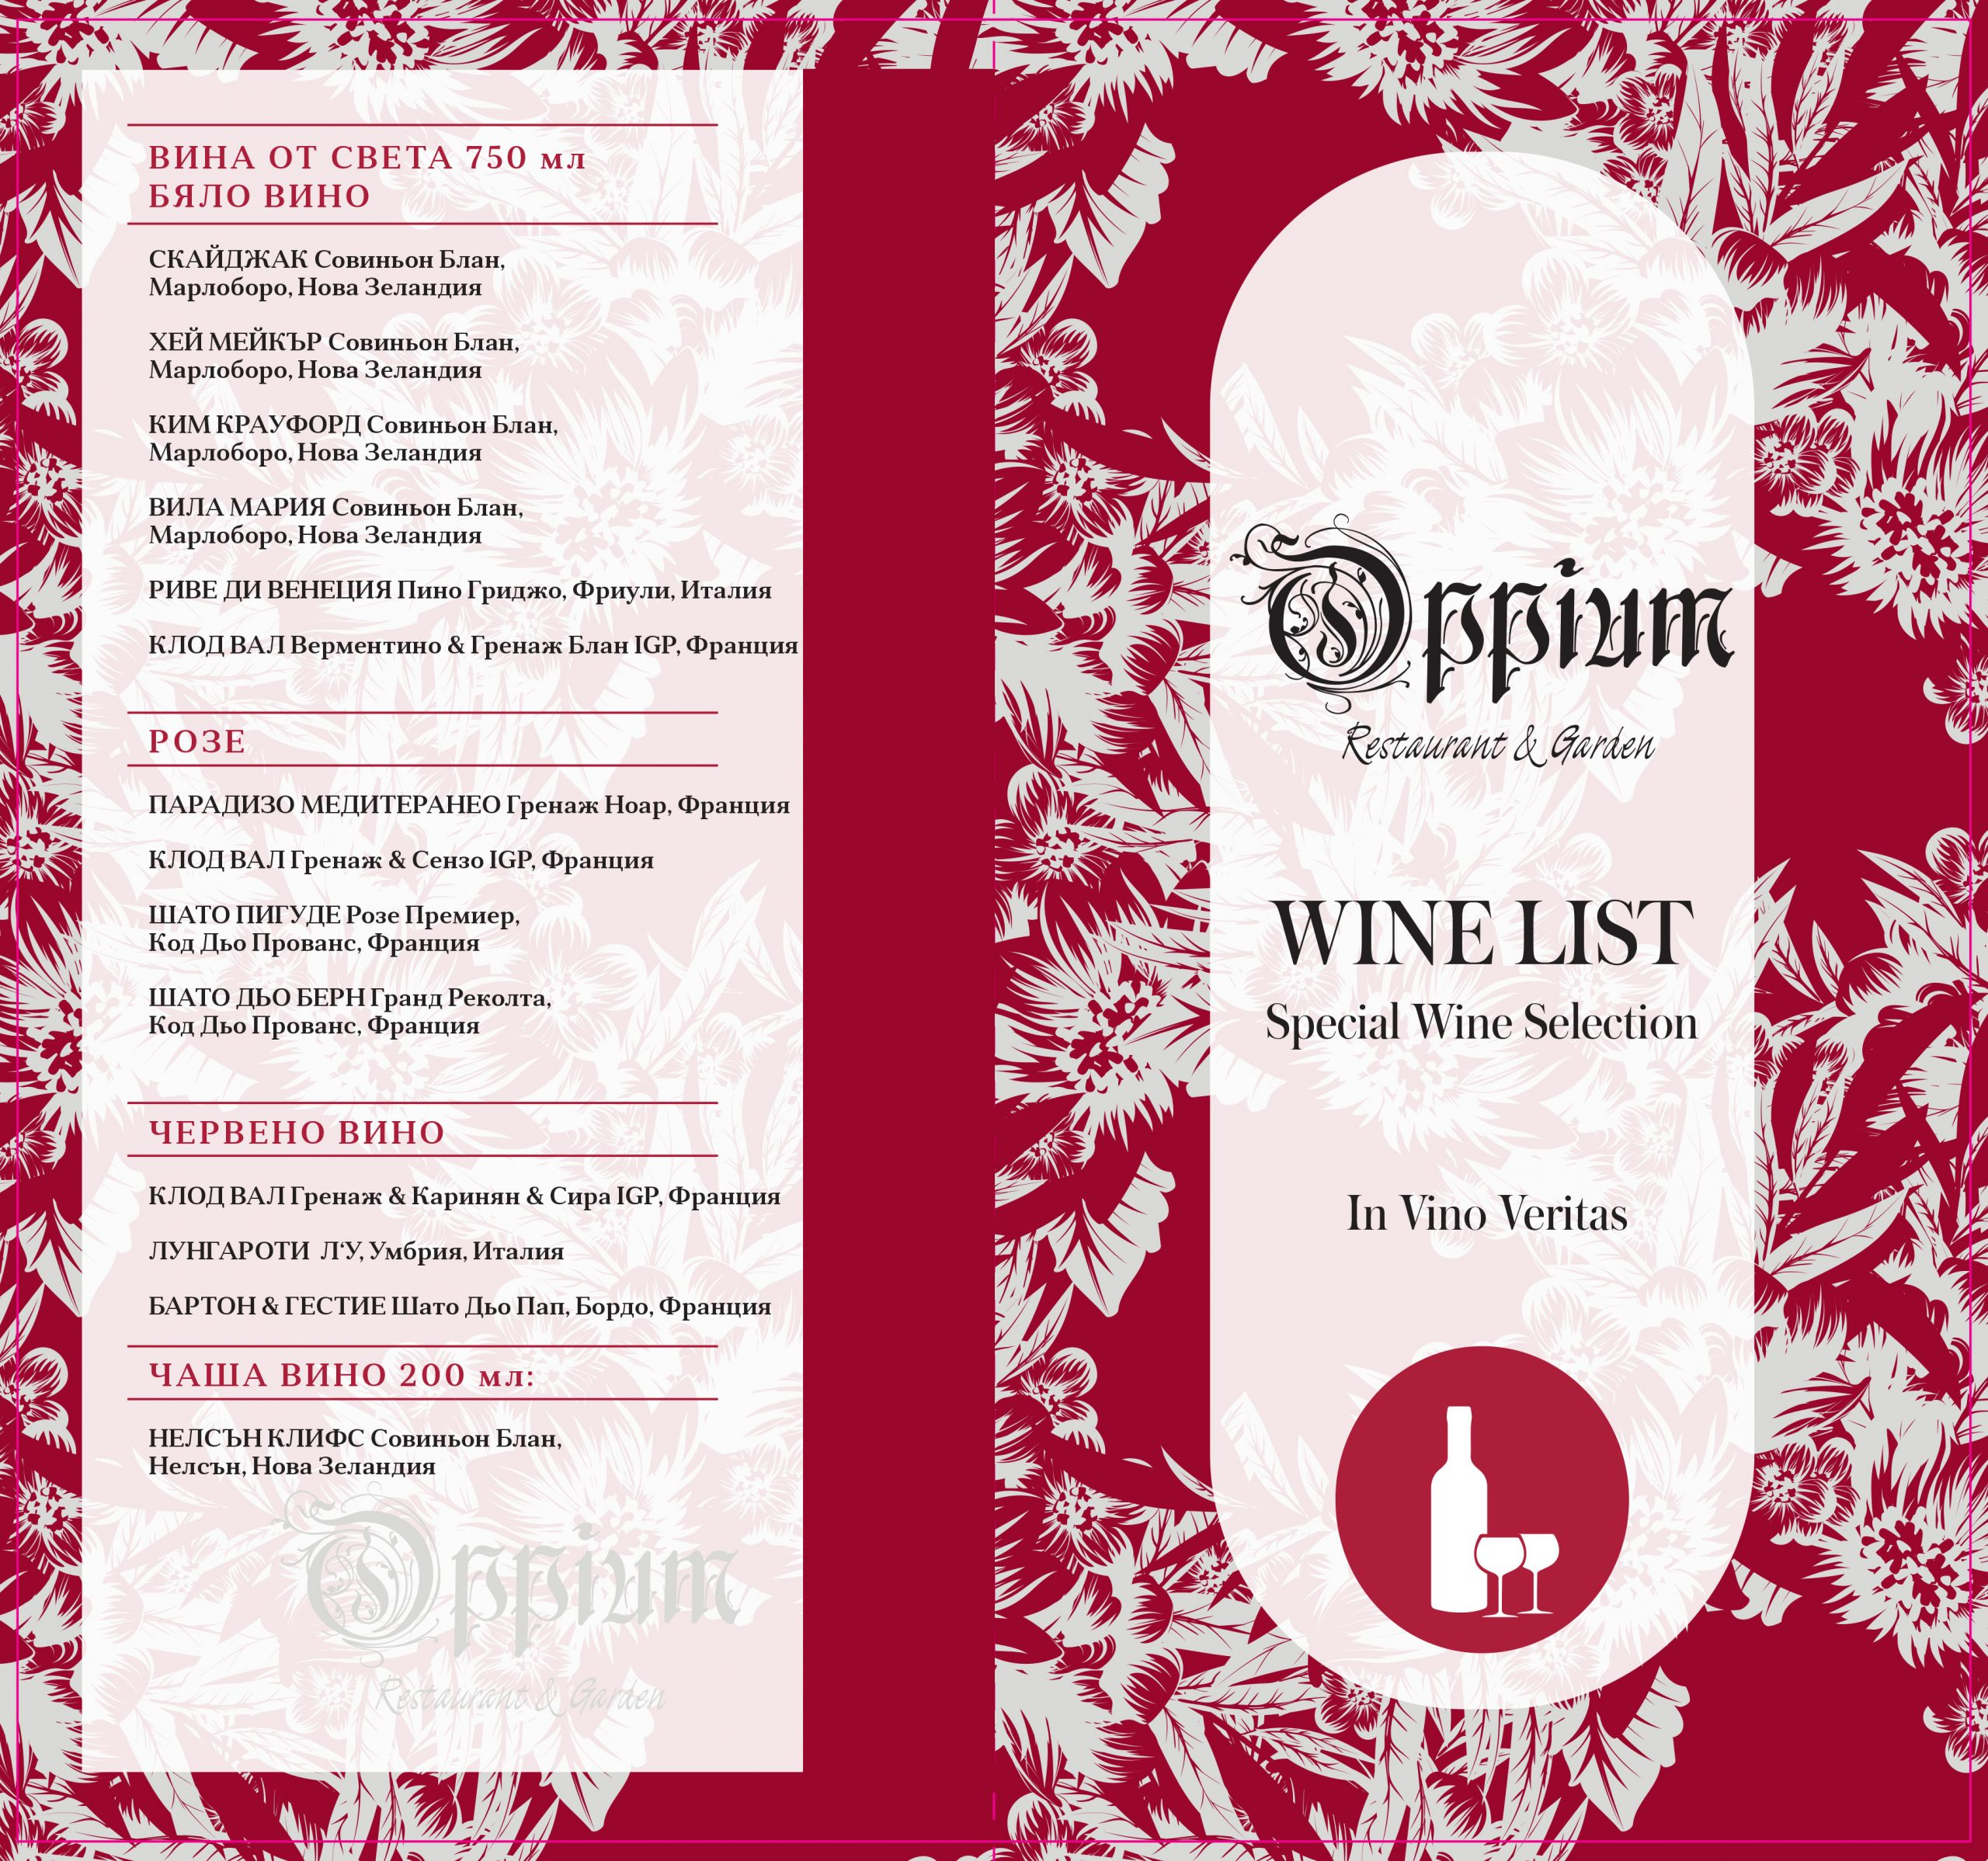 OPIUM_Wine list_300_280mm_12_2019_Preview